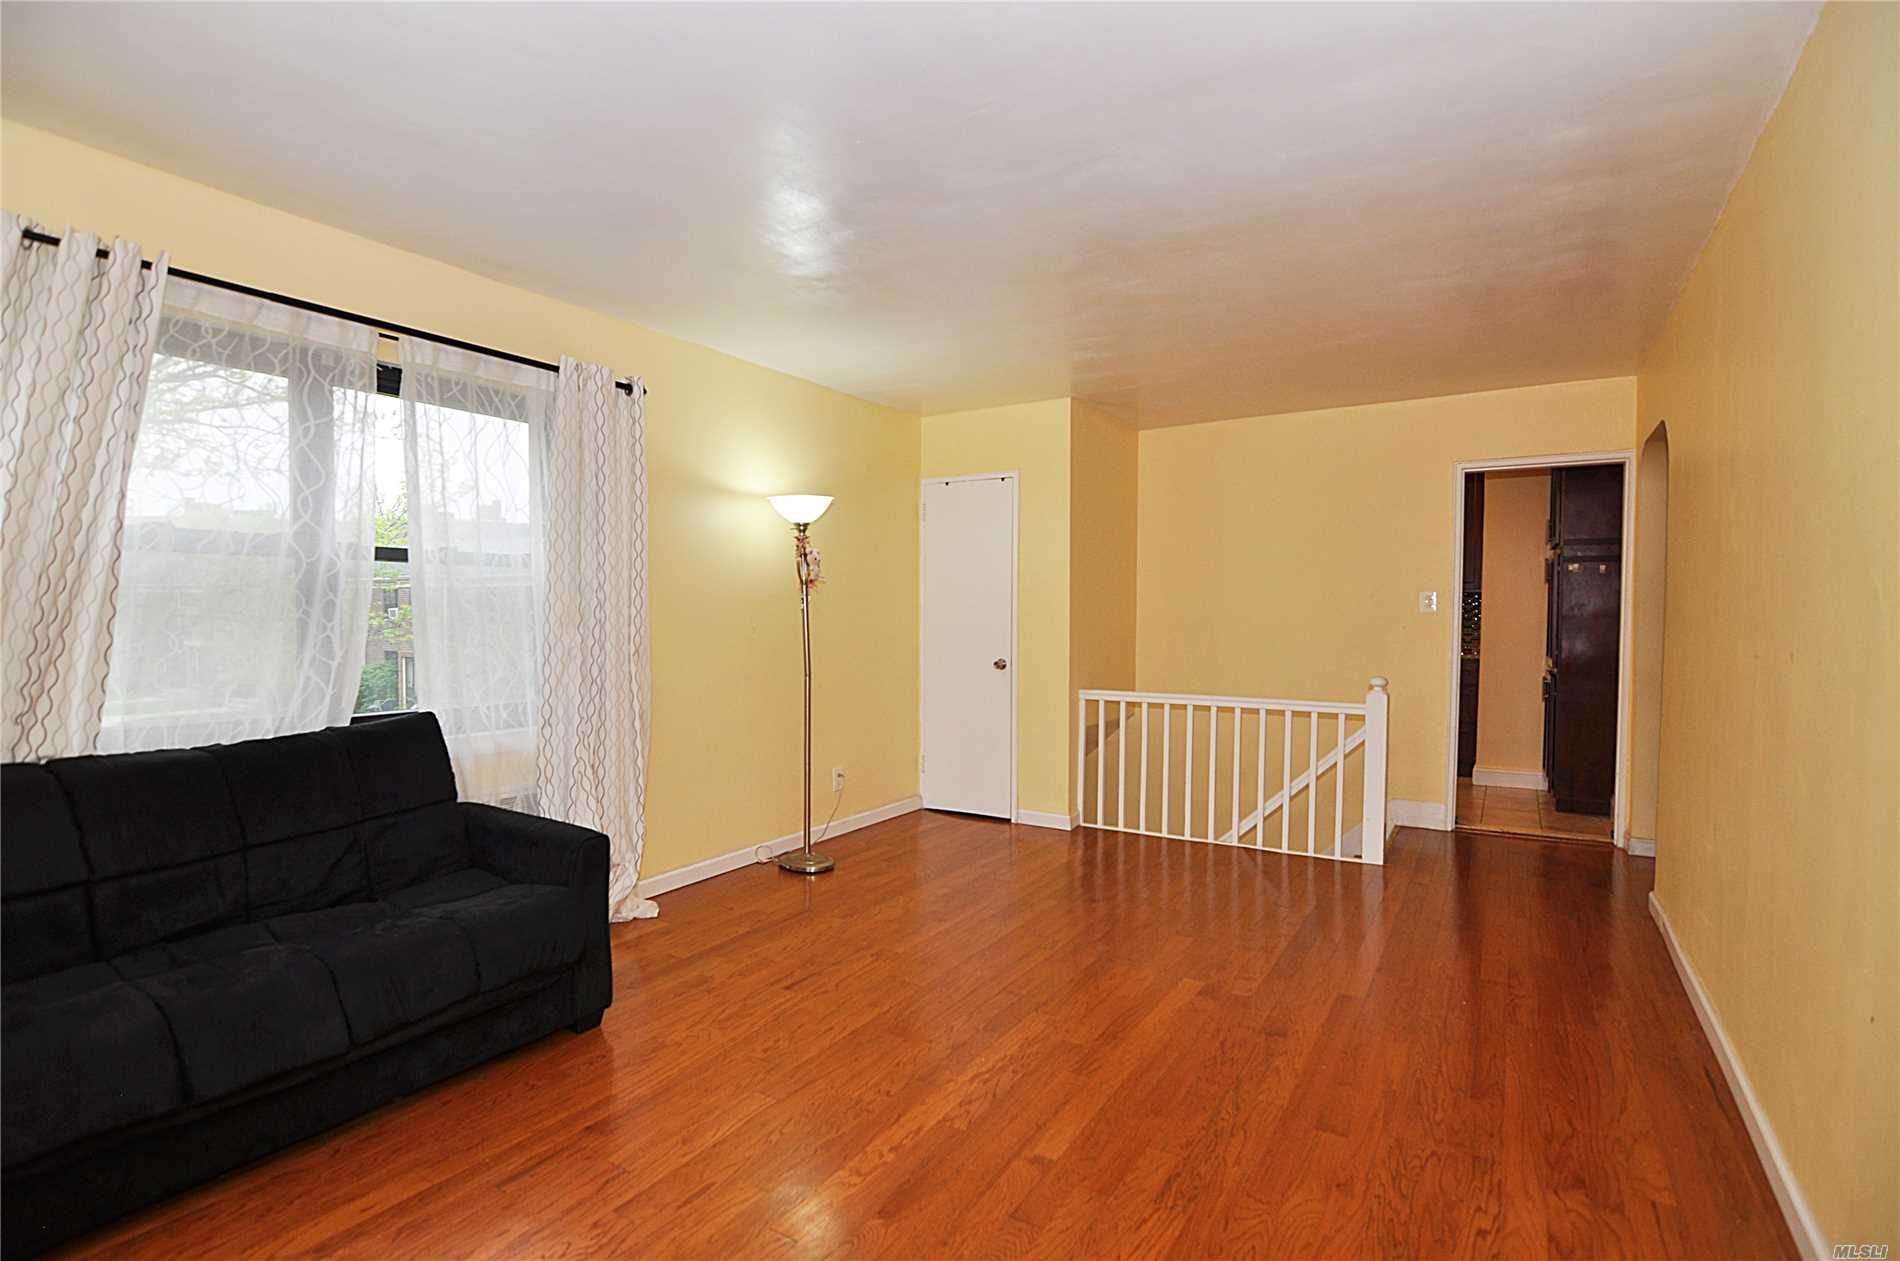 Mint! True Corner Upper Unit, Set Back In Deep Courtyard, Updated Kitchen, Sparkling Floor Throughout, Brand New Storm And Front Doors/Windows.Private Entrance, Bbq Ok, Parking Inc, Sd26. Qm5, Qm8, Q88, Q27, Lirr, Near Parks, Shops, School, Restaurants, Security, Pet Friendly, Rent Ok, No Flip Tax, Maintenance Includes All Except Electricity, Private Entrance, Washer/Dryer Inside, Attic For Storage, 5 Laundry On Premise, 100% Equity Coop, Maintenance Tax Deductible, Lots Of Closets,